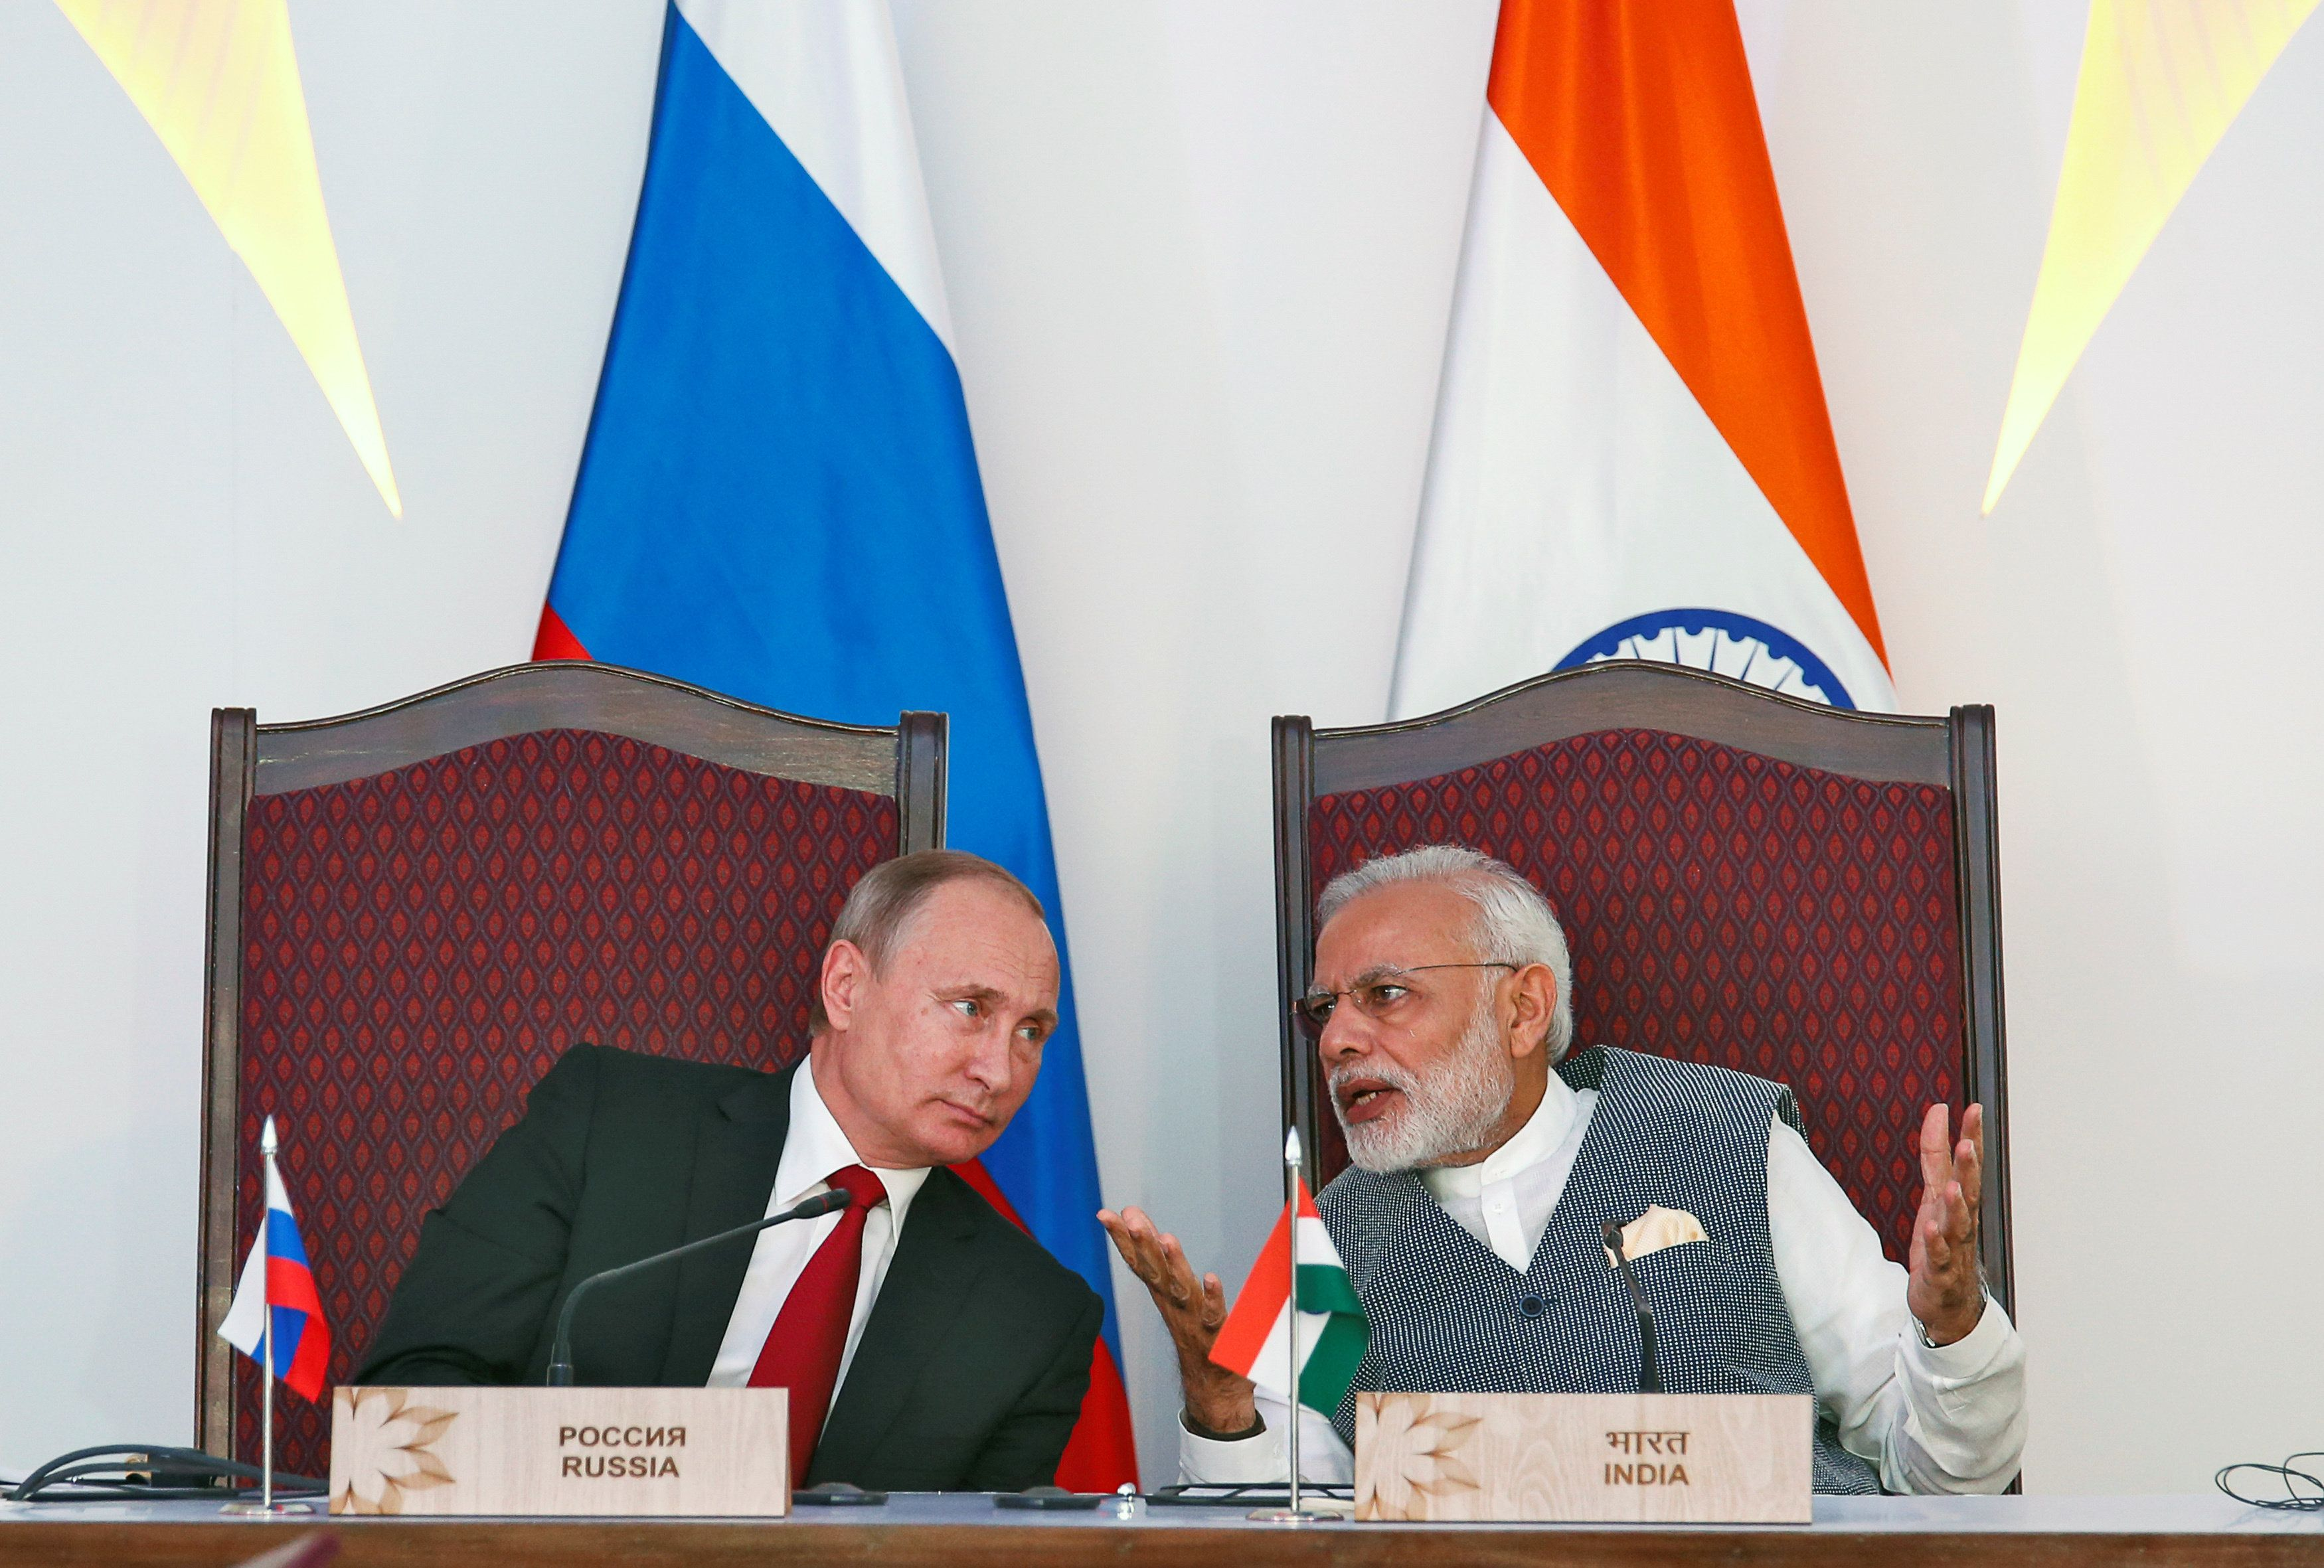 India's Prime Minister Narendra Modi (R) speaks with Russian President Vladimir Putin during an exchange of agreements event after the India-Russia Annual Summit in Benaulim, in the western state of Goa, India, October 15, 2016. REUTERS/Danish Siddiqui